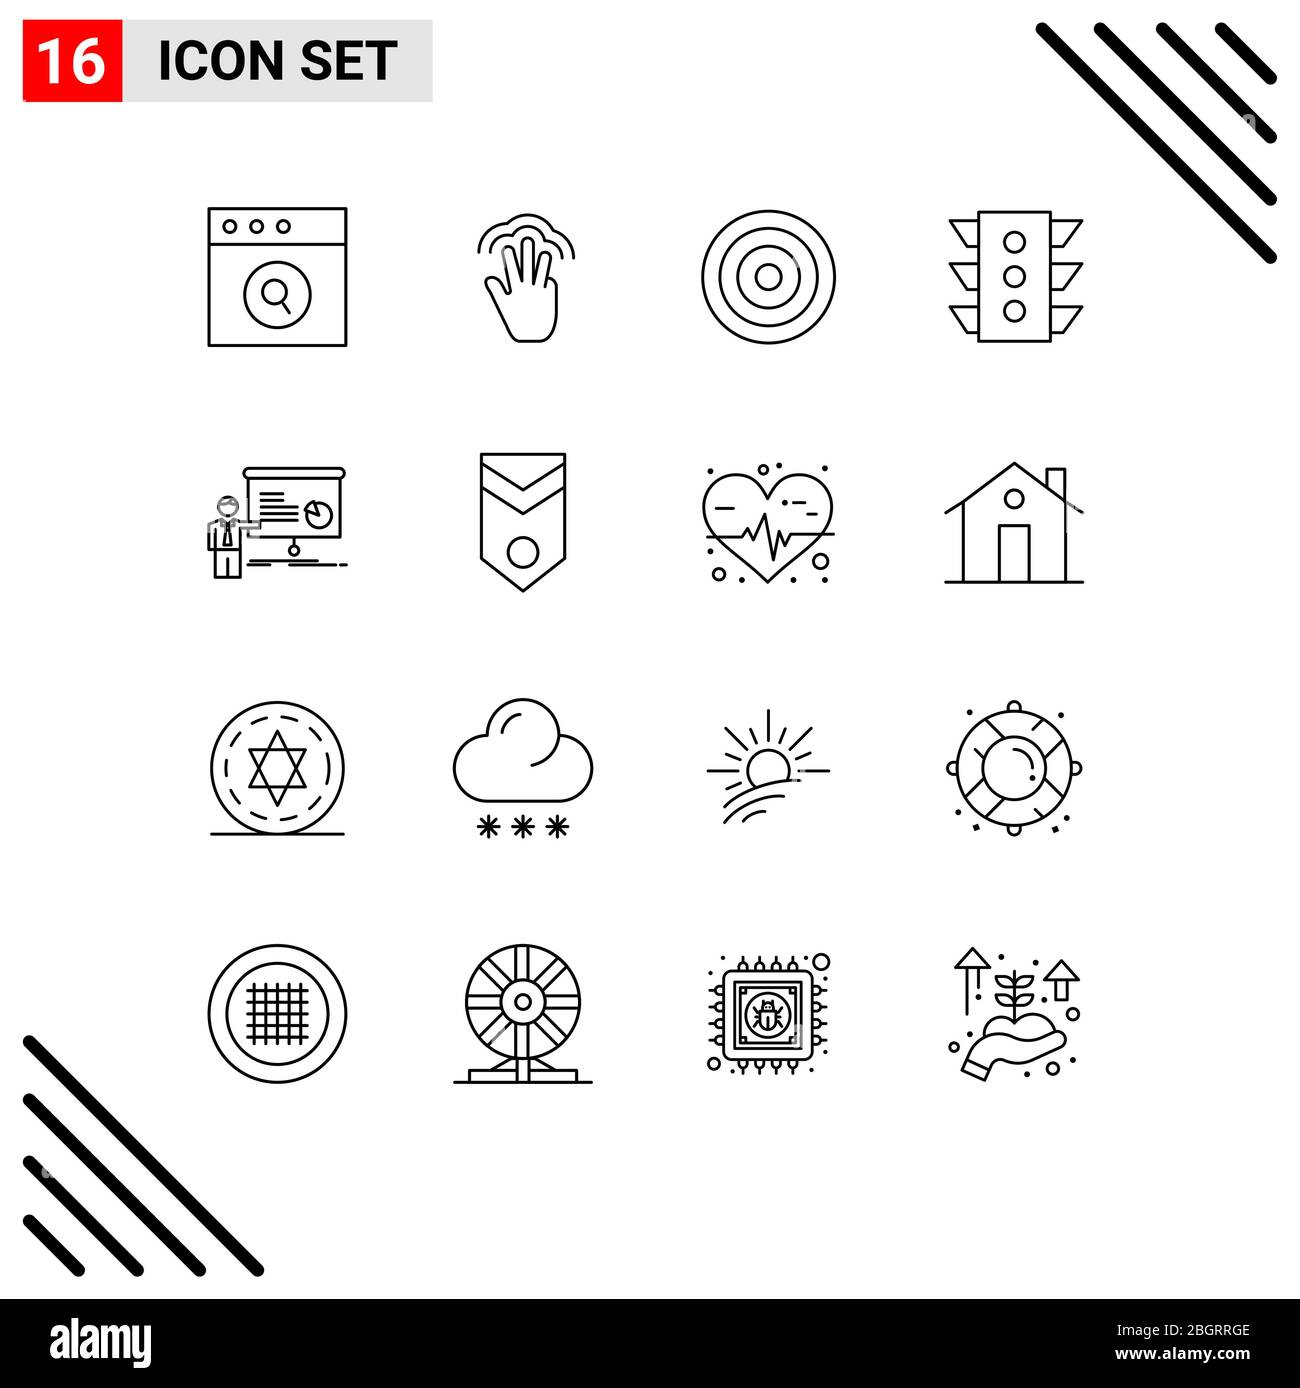 User Interface Pack of 16 Basic Outlines of graph, navigation, basic, signal, light Editable Vector Design Elements Stock Vector